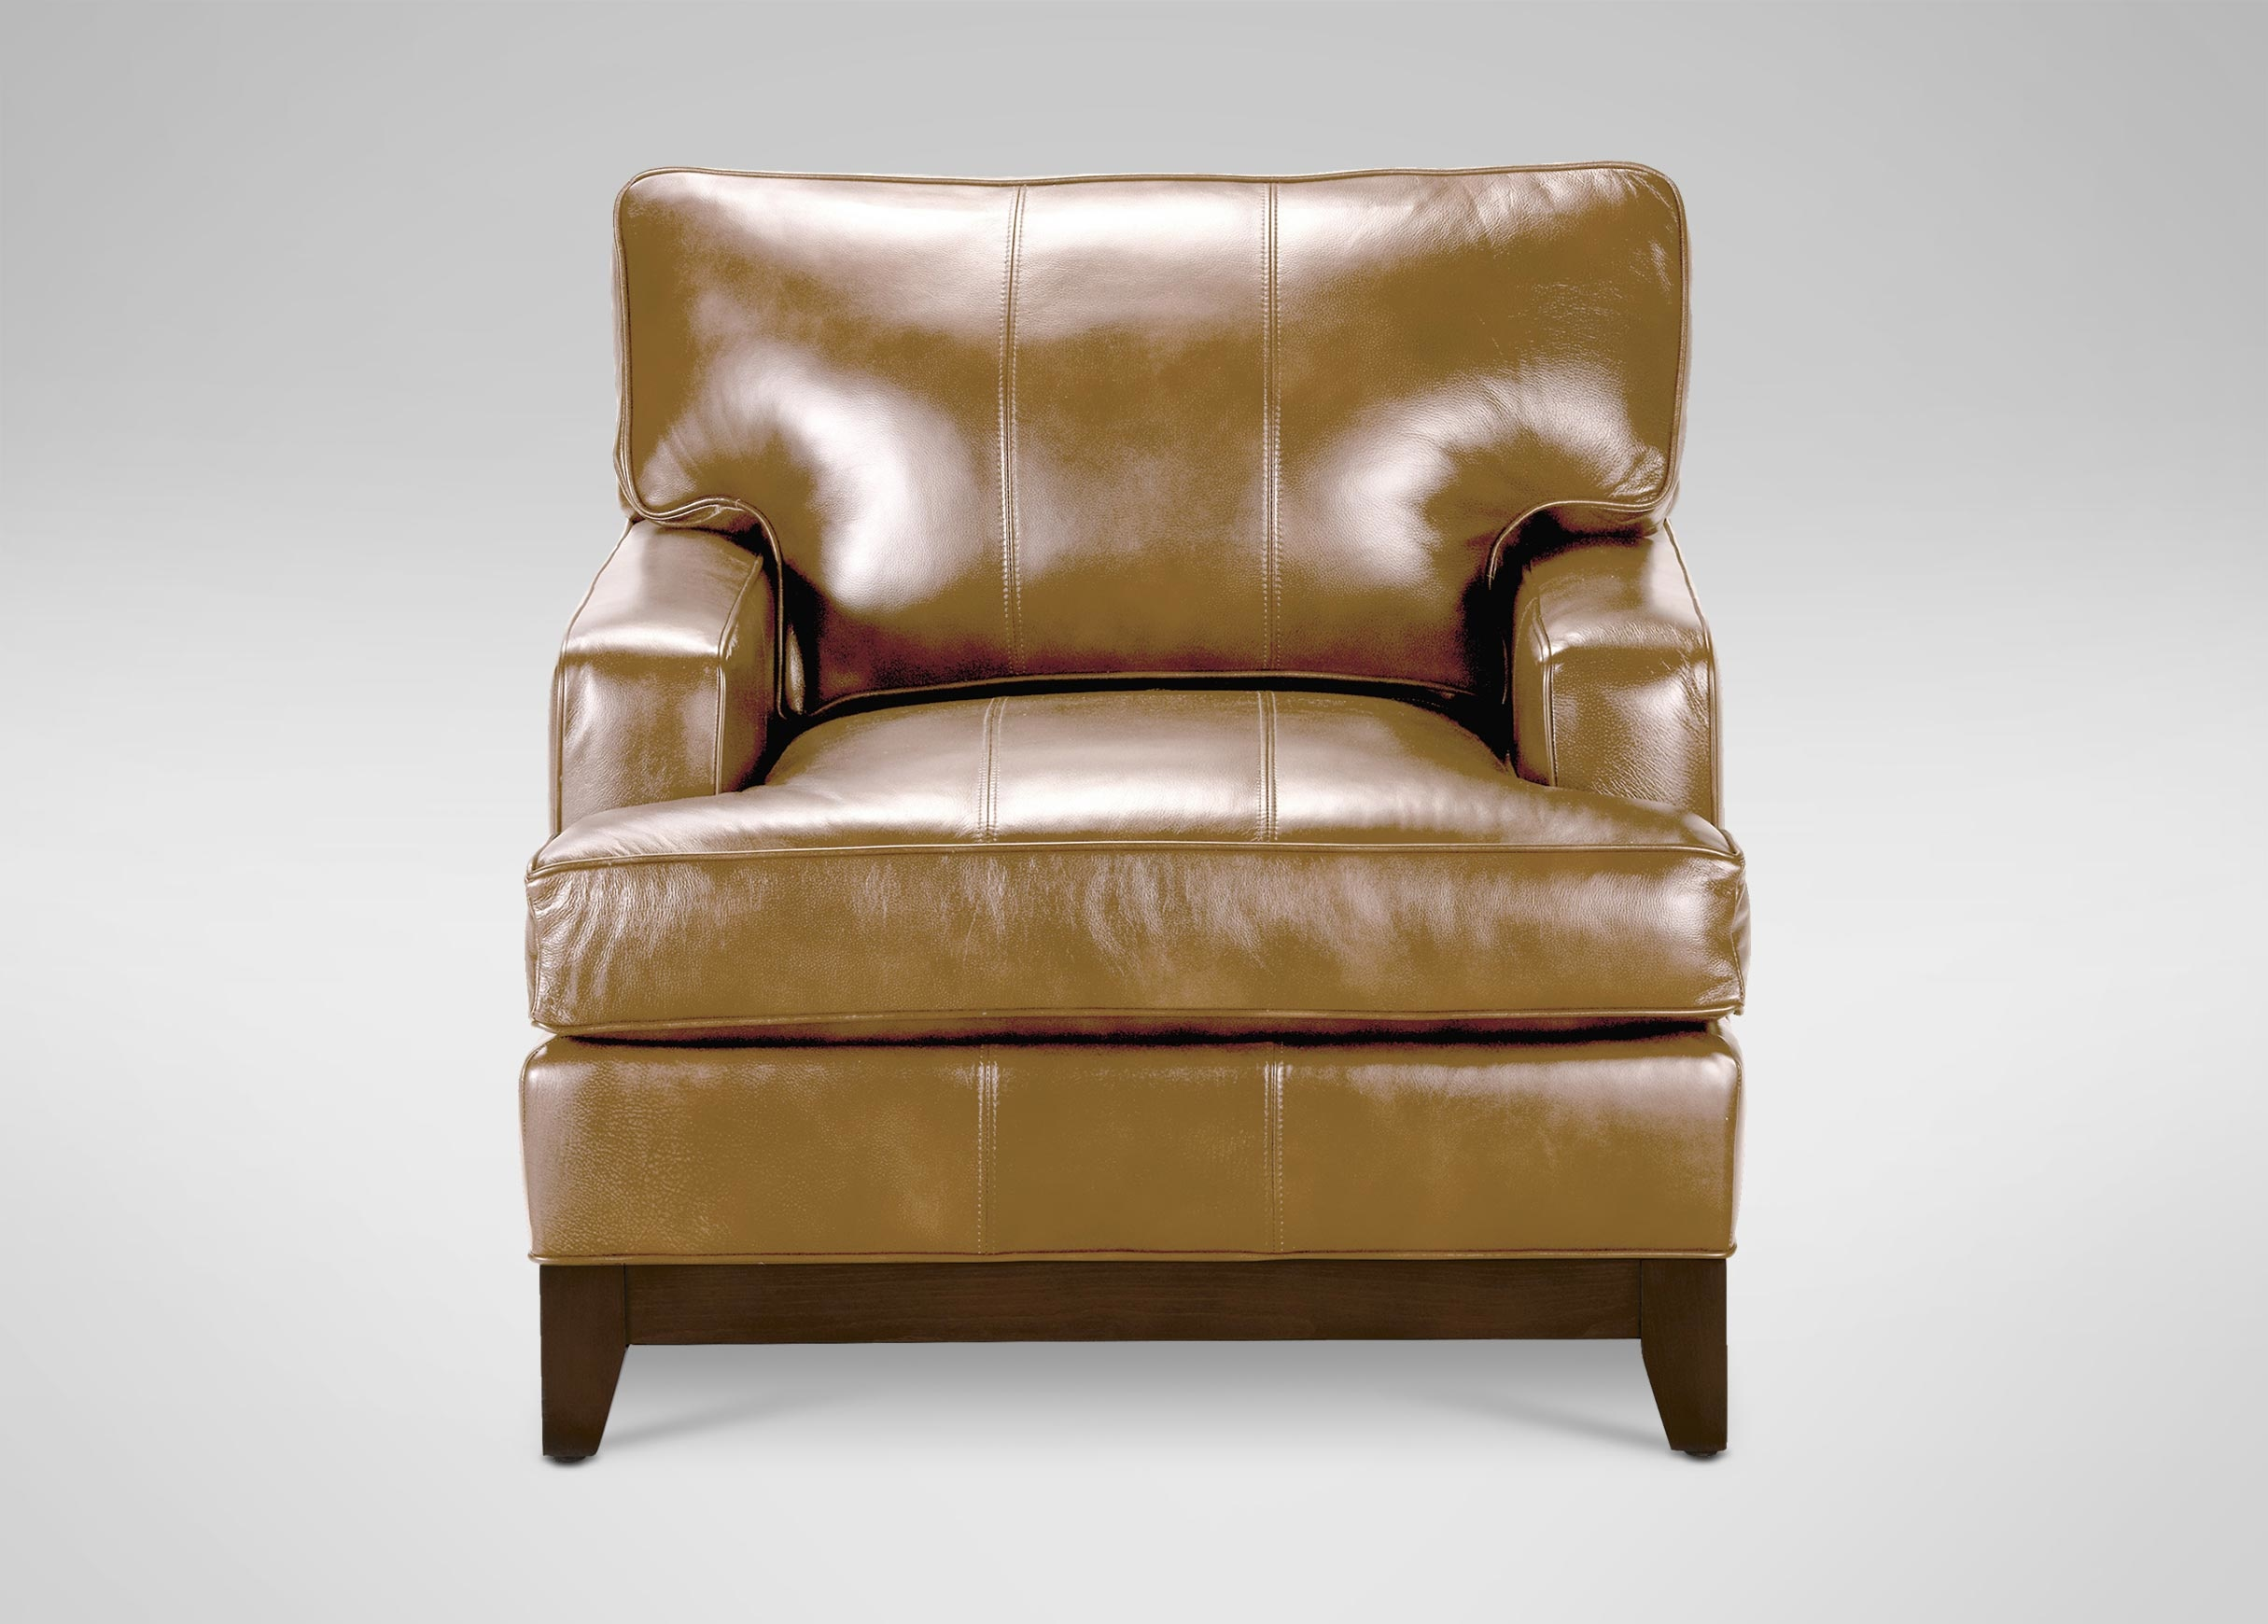 Ethan Allen Furniture Stores | Ethan Allen Recliners | Fabric Recliner Chairs